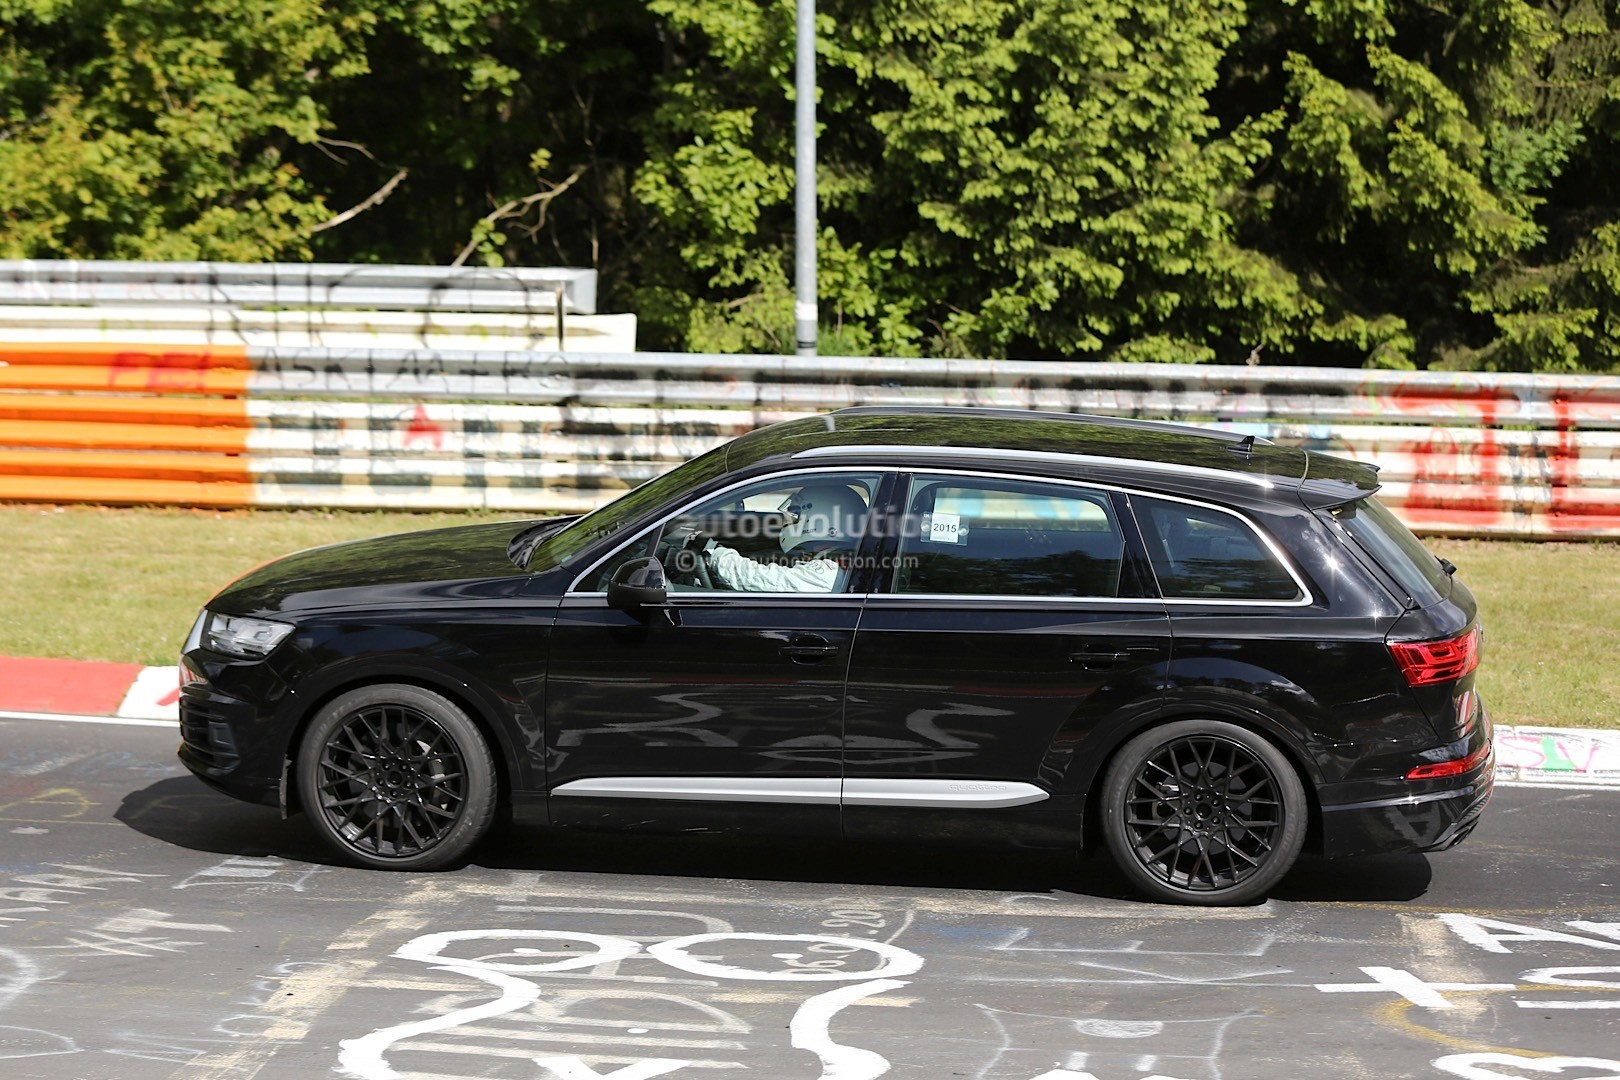 2016 Audi SQ7 Spied Inside and Out, Shows Off On the Test Track - autoevolution